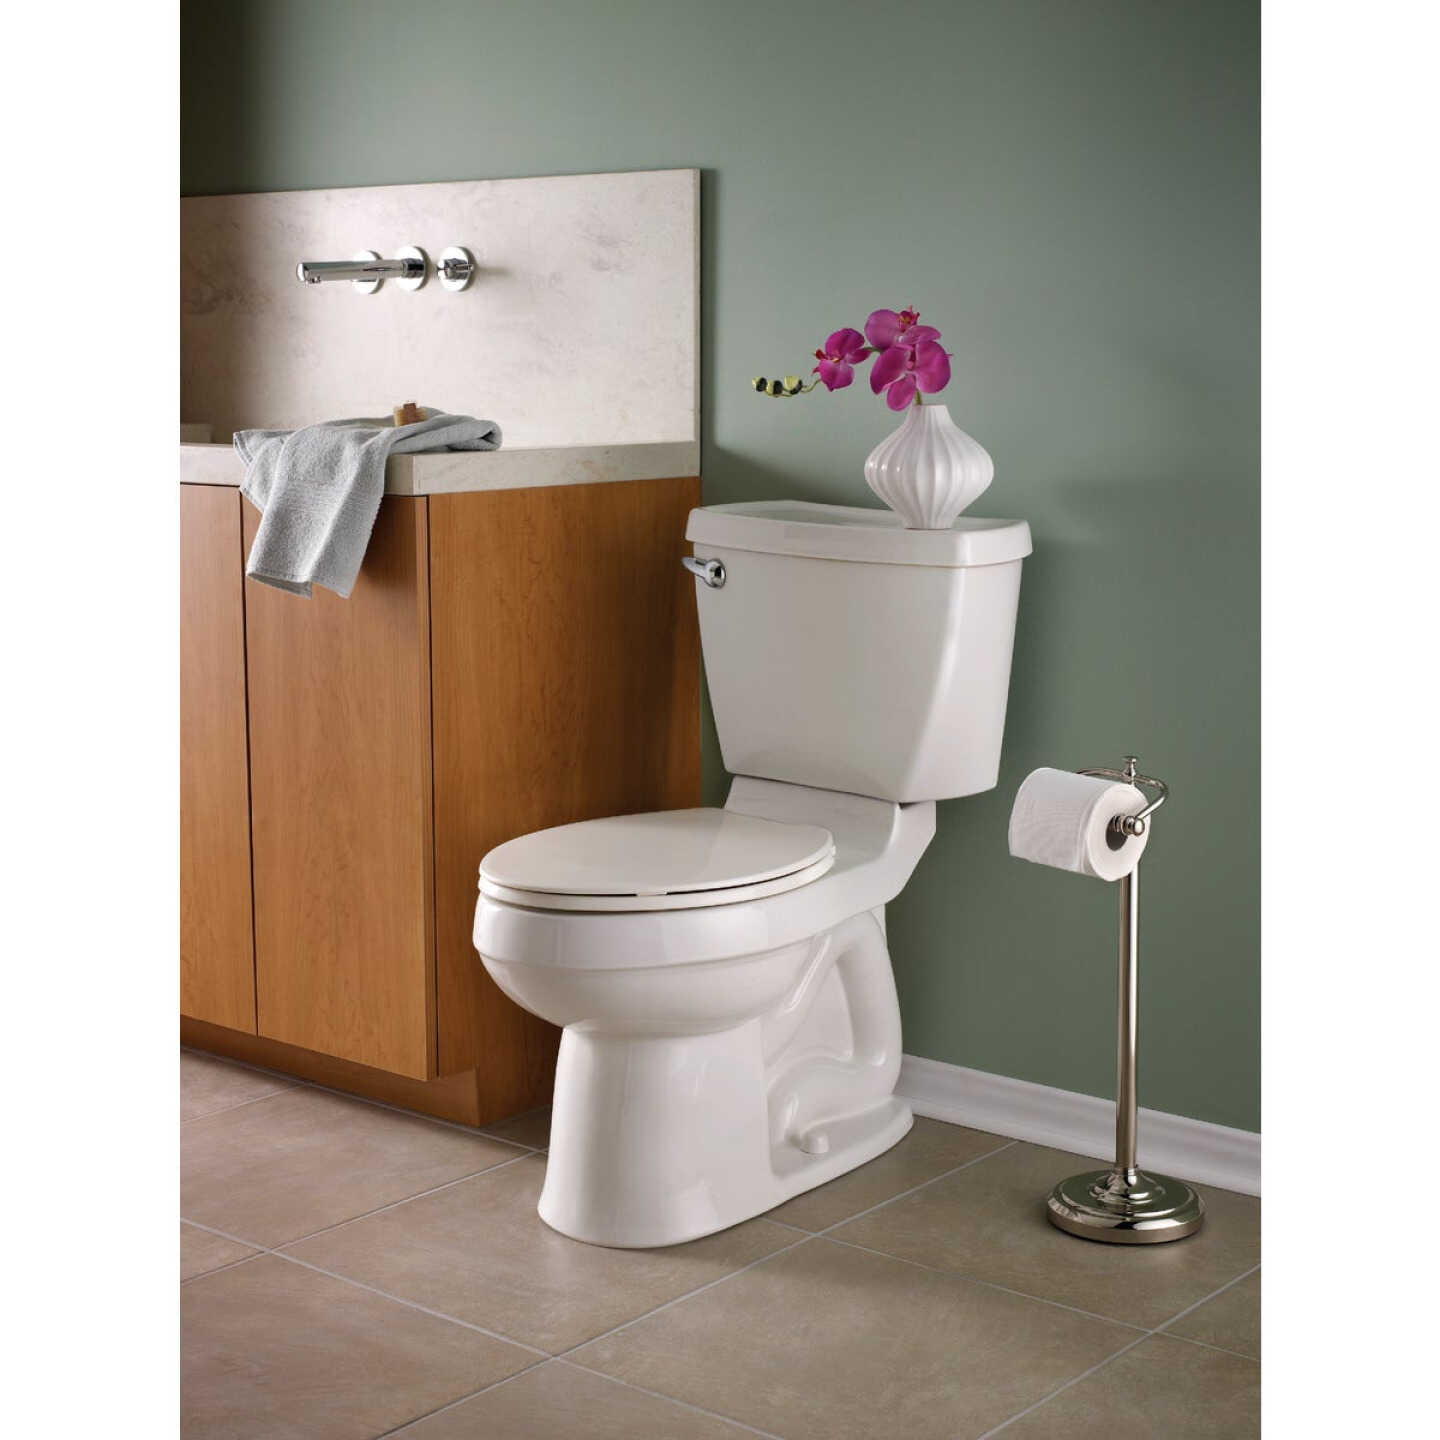 American Standard Champion 4 Right Height White Elongated Bowl 1.6 GPF Toilet Image 2